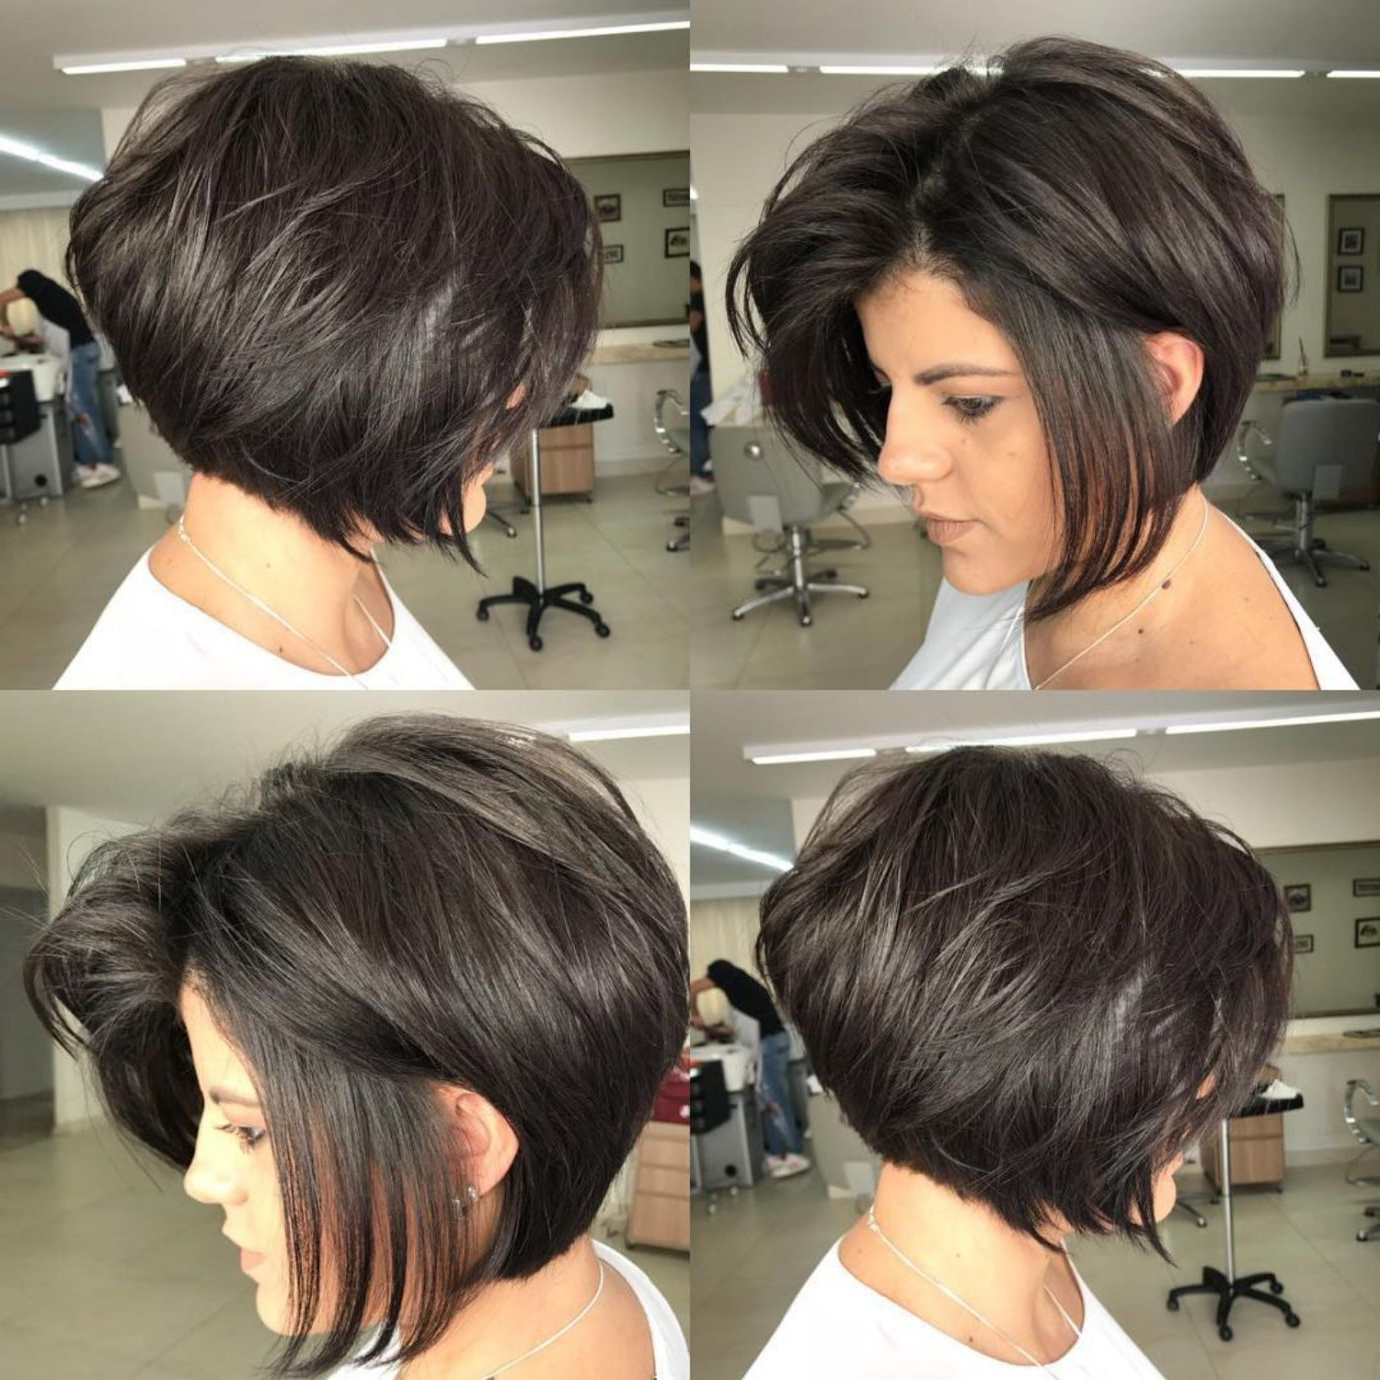 Pin On Great Hair In Fashionable Jet Black Chin Length Sleek Bob Hairstyles (Gallery 1 of 20)